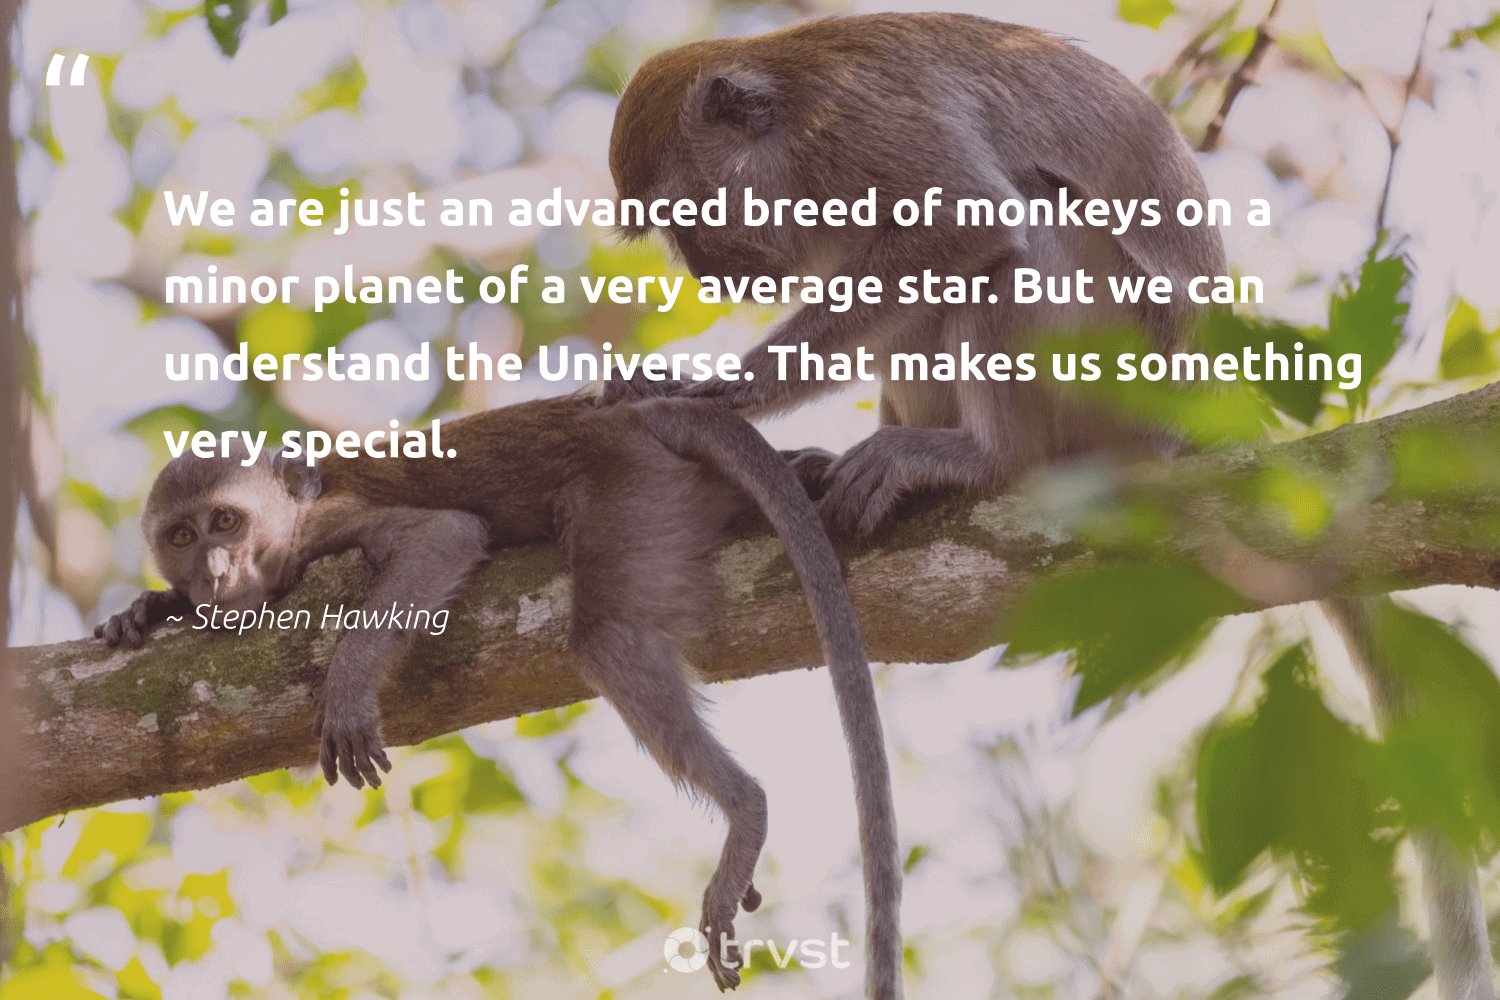 """""""We are just an advanced breed of monkeys on a minor planet of a very average star. But we can understand the Universe. That makes us something very special.""""  - Stephen Hawking #trvst #quotes #planet #monkeys #earth #monkey #sustainability #beinspired #environment #monkeylife #wildlifeplanet #thinkgreen"""